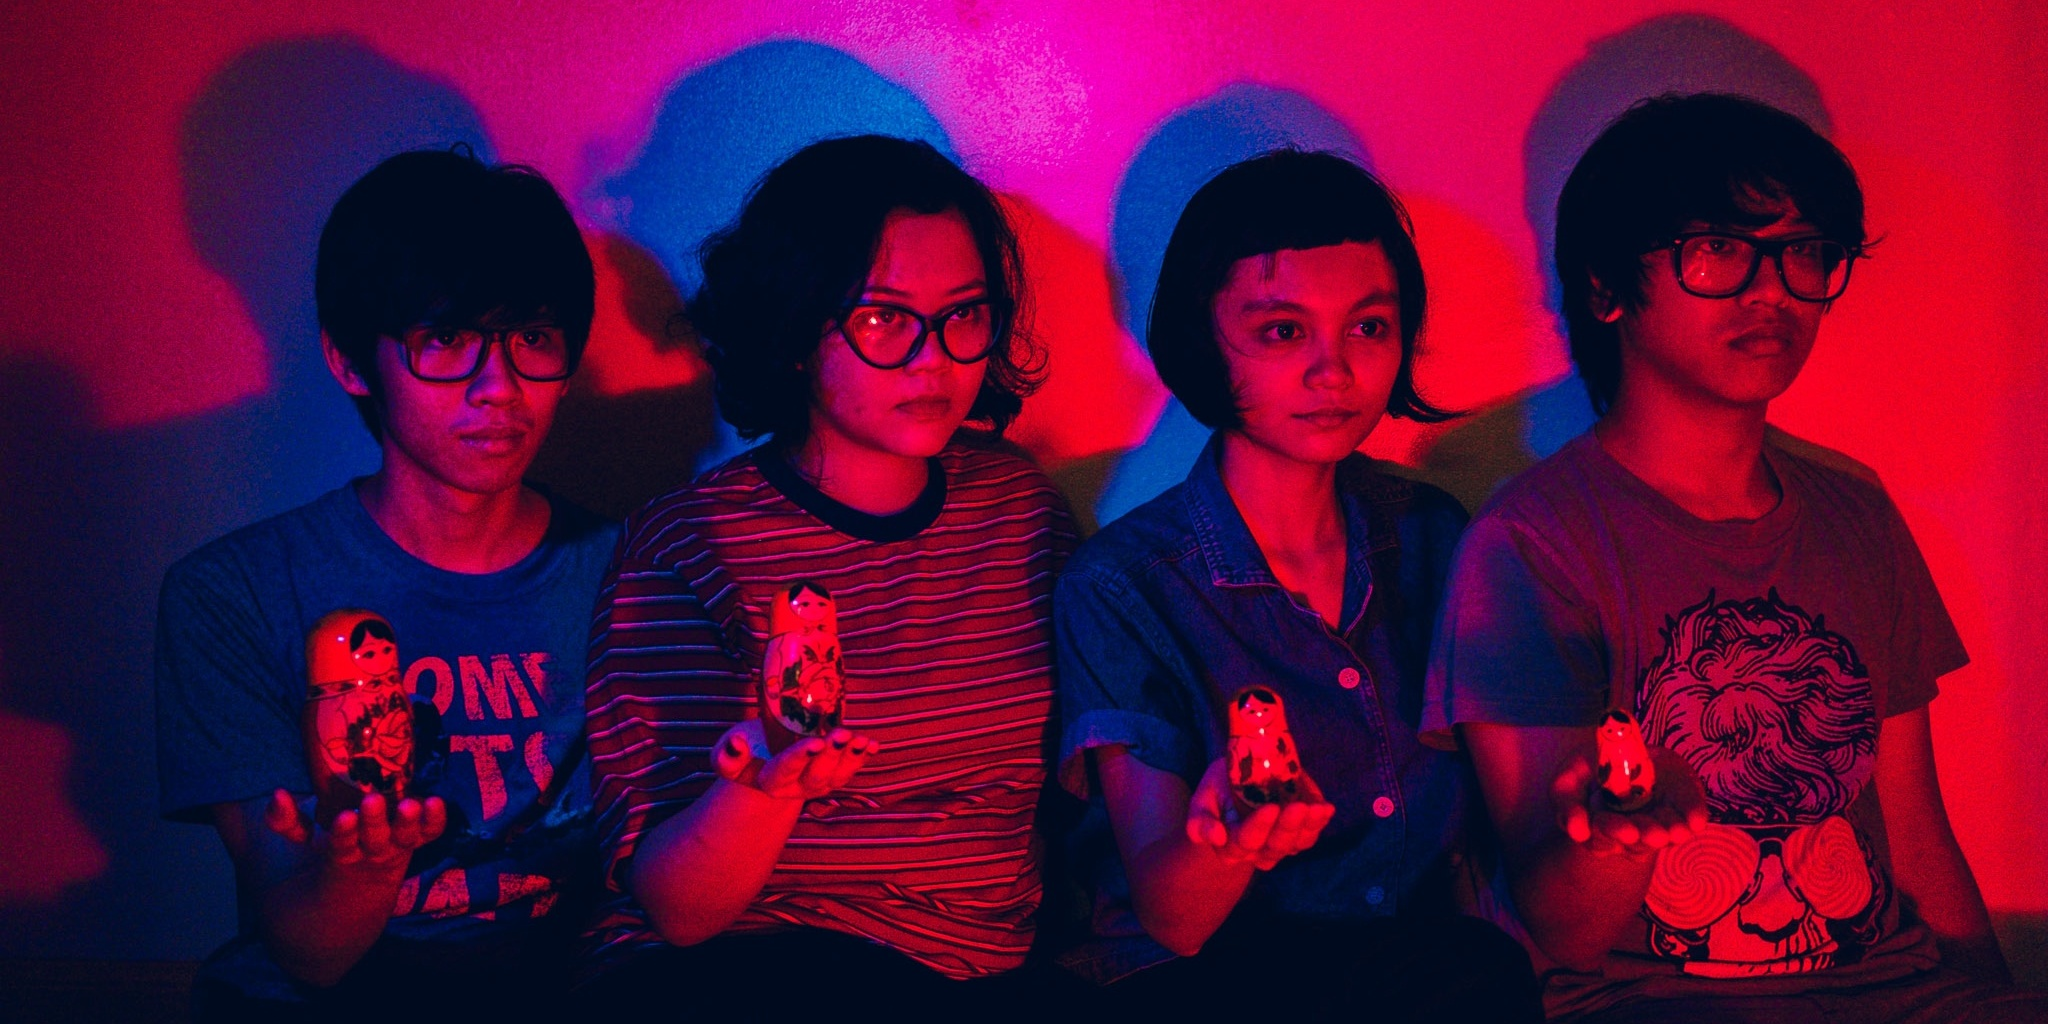 CELL-O-PHANE: A track by track guide to The Buildings' debut album